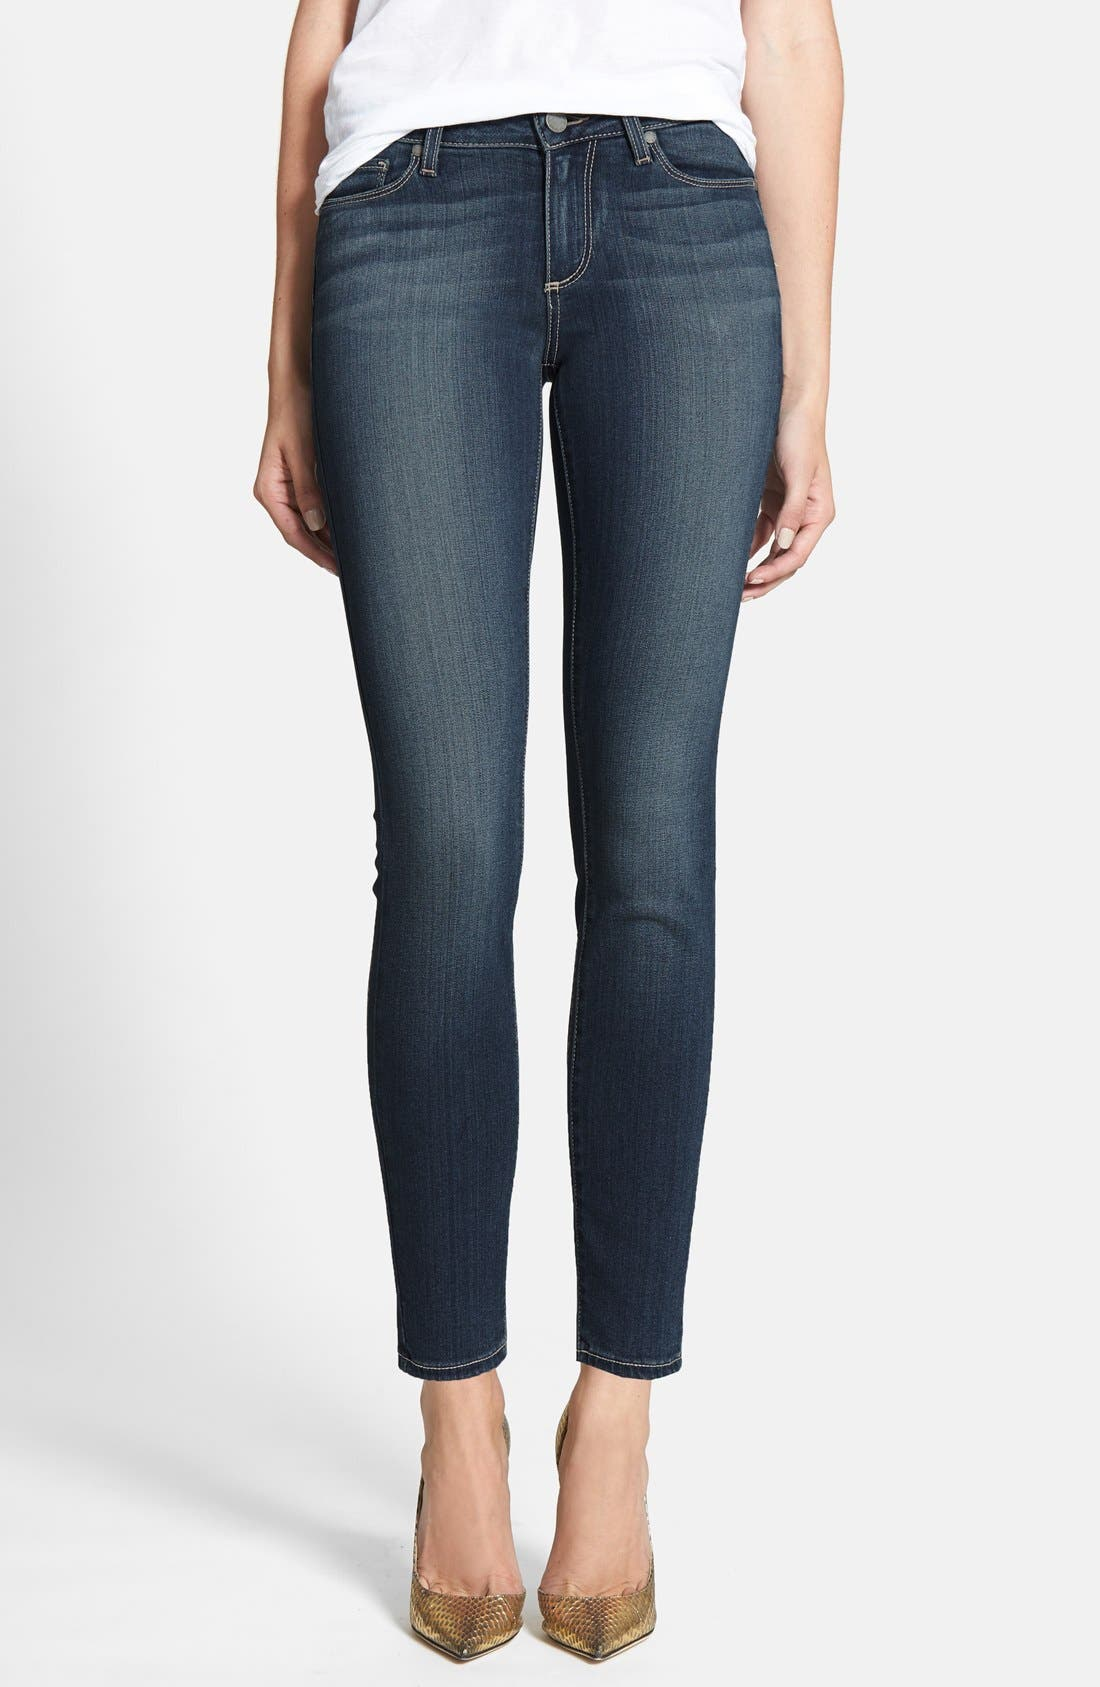 Alternate Image 1 Selected - PAIGE 'Transcend - Verdugo' Ankle Skinny Jeans (Easton)